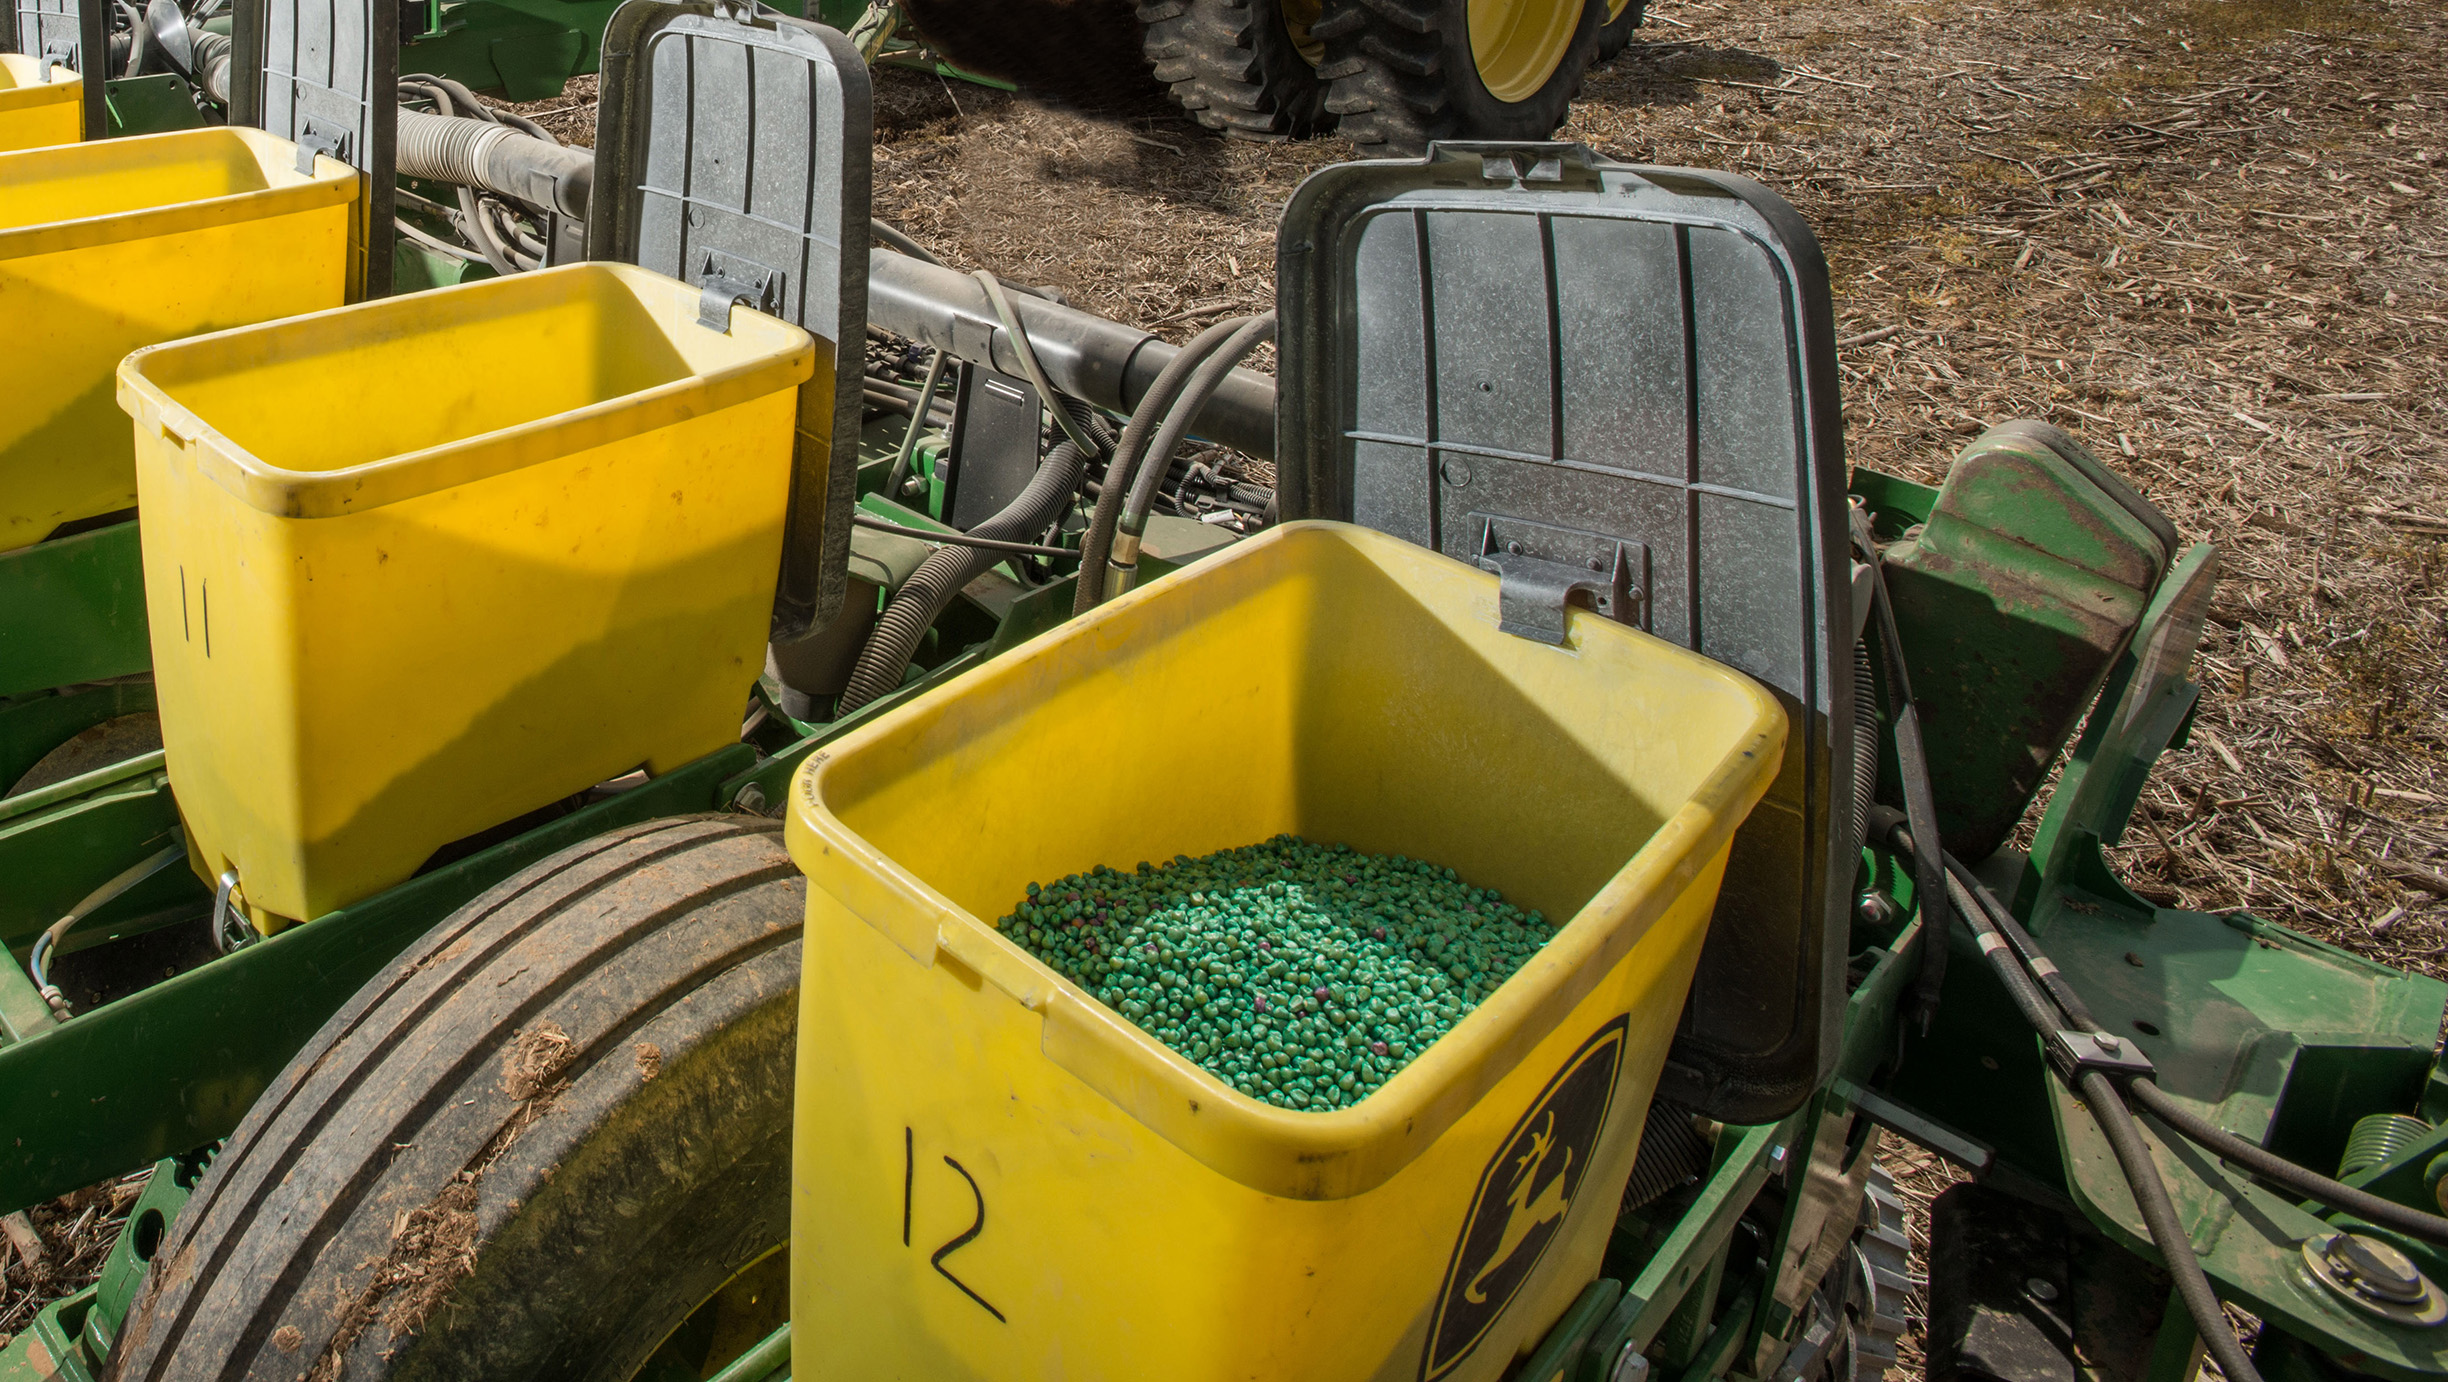 Seed corn, bright green because of a coating of pesticides, loaded into yellow hoppers of a seed drill